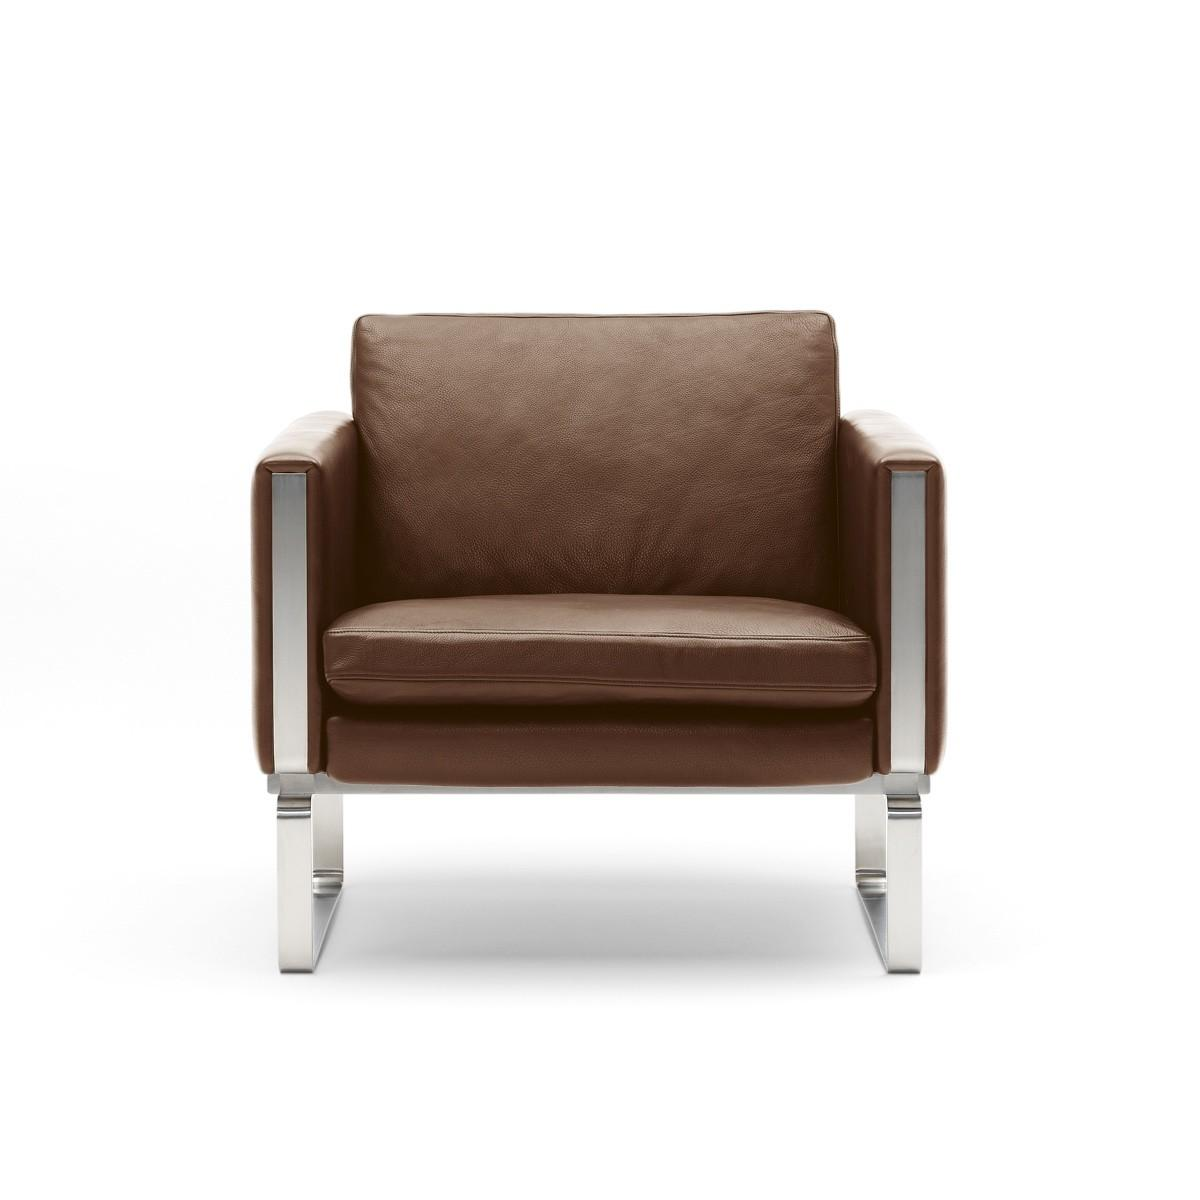 Iconic Chair Designs 1970s